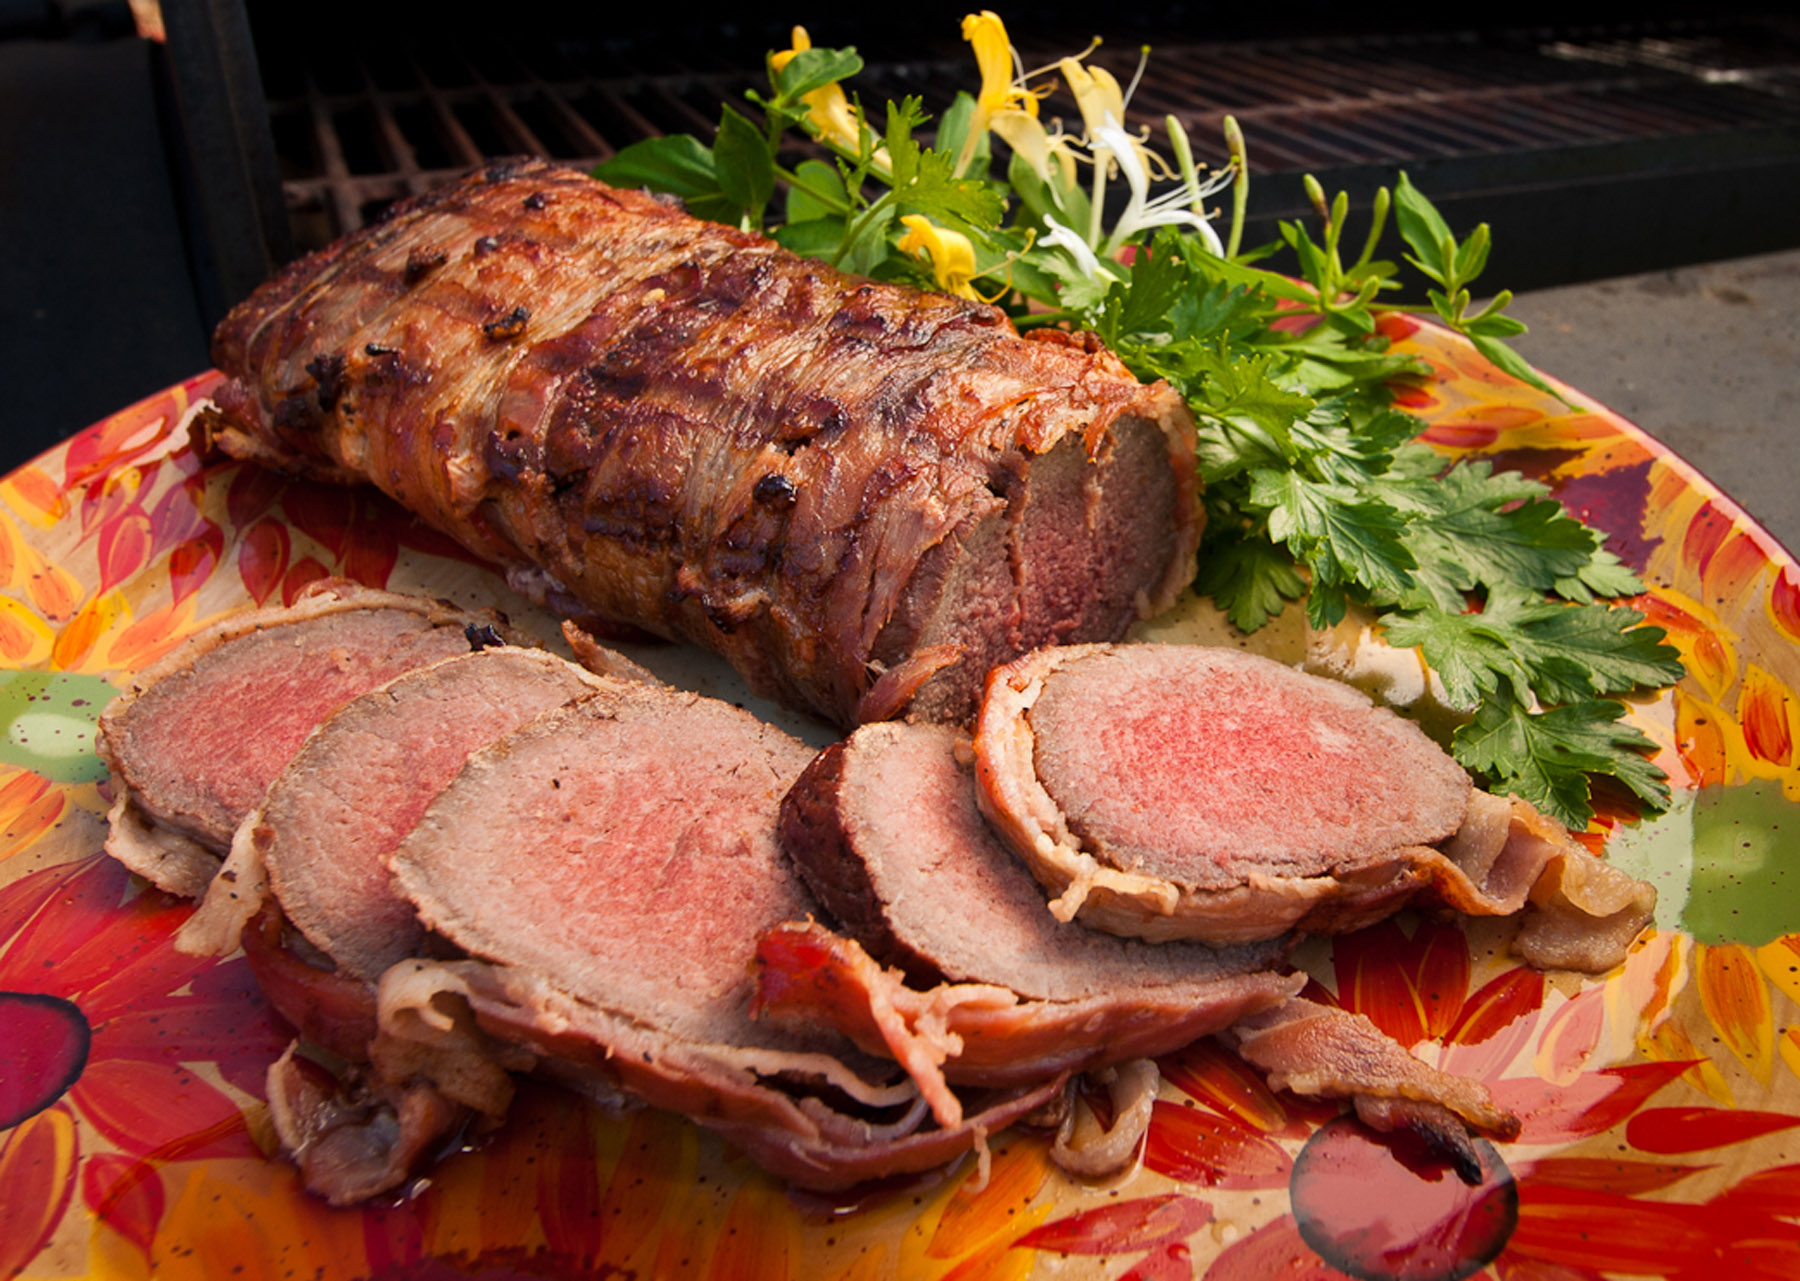 Grilled venison is a healthy protien for your family.